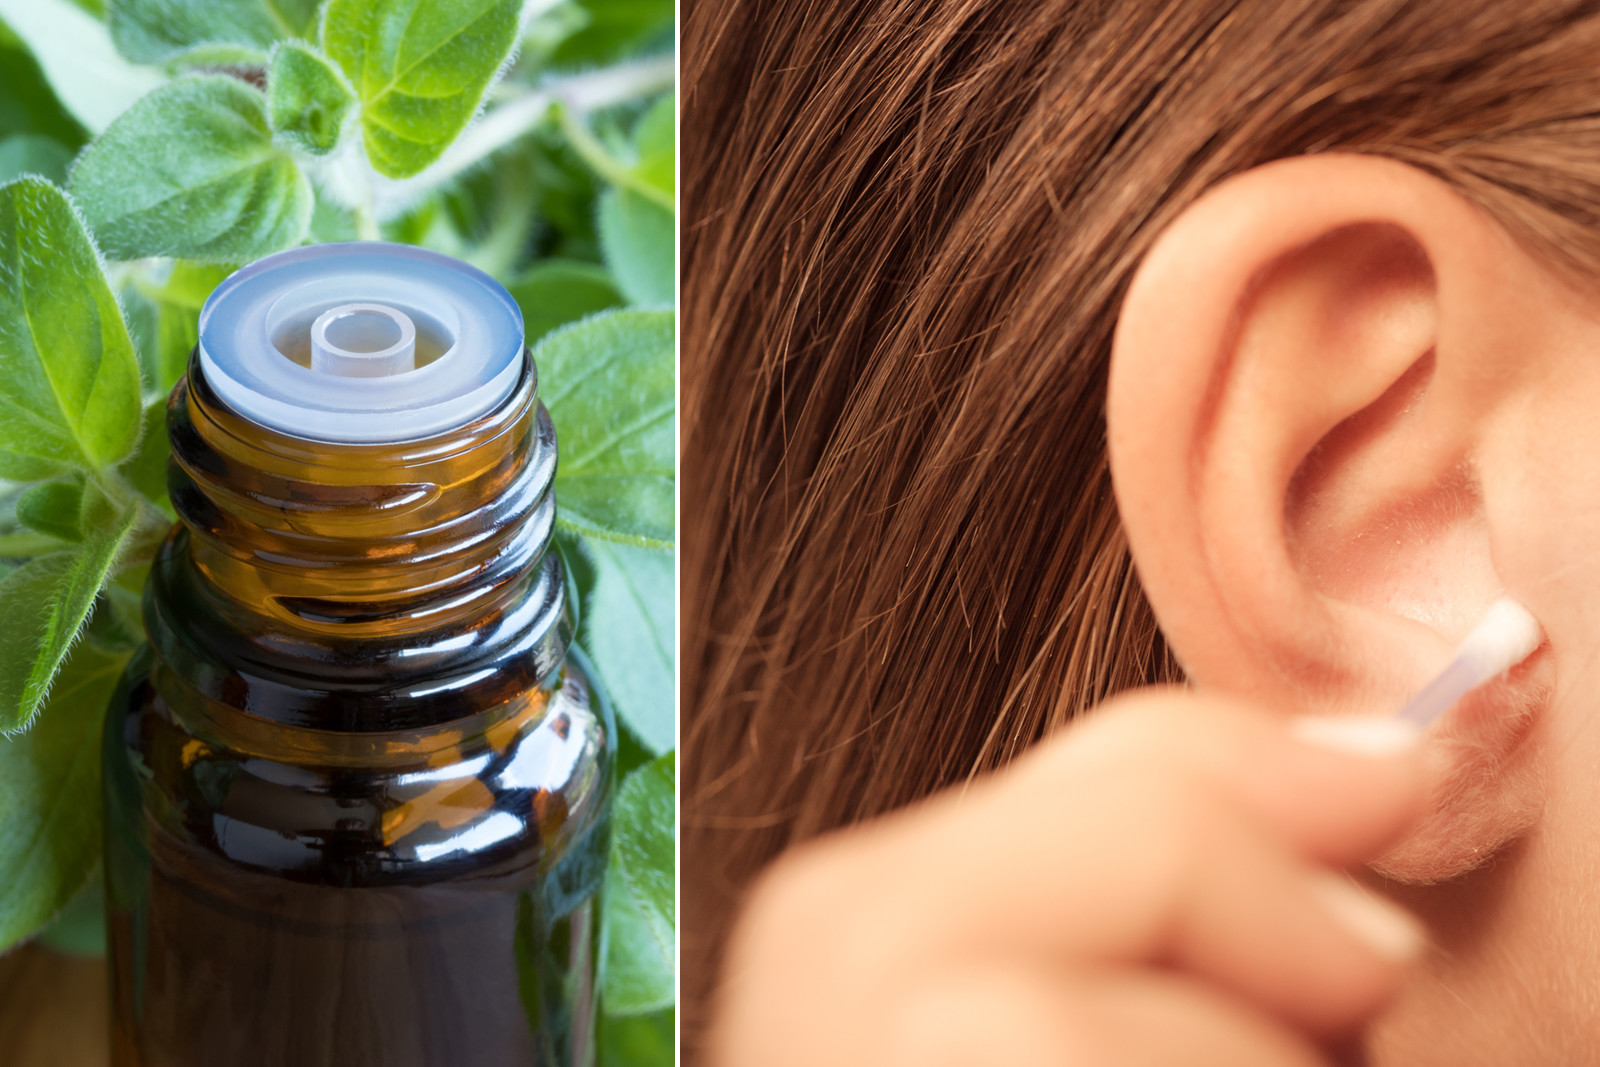 7 Best Essential Oils for Clogged Ears You Desperately Need